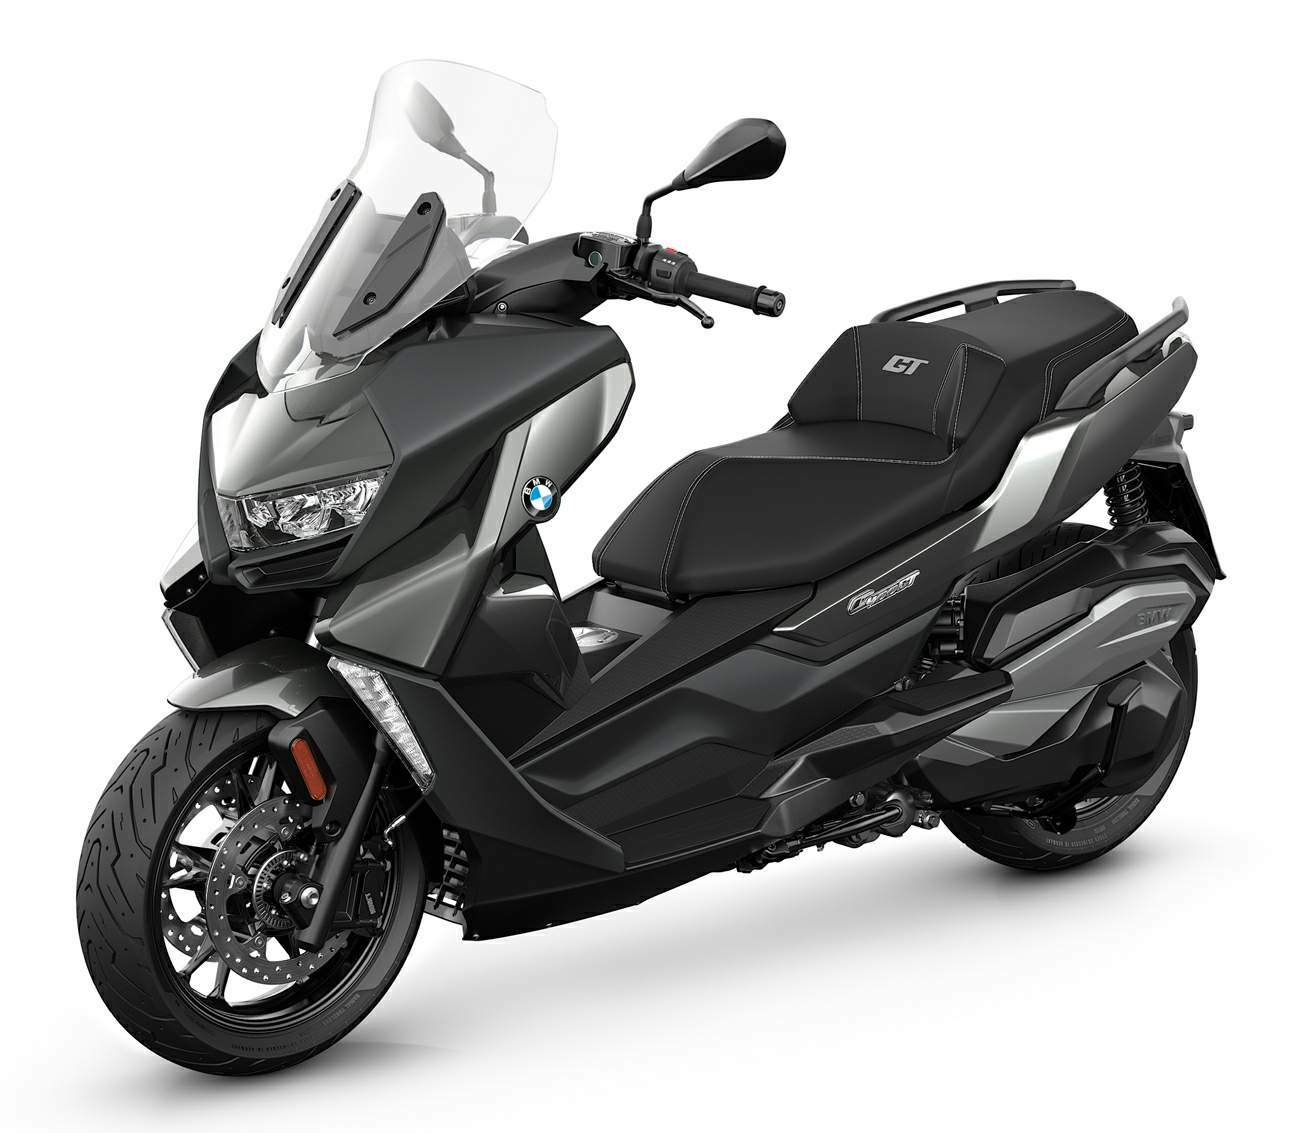 BMW C 400GT technical specifications